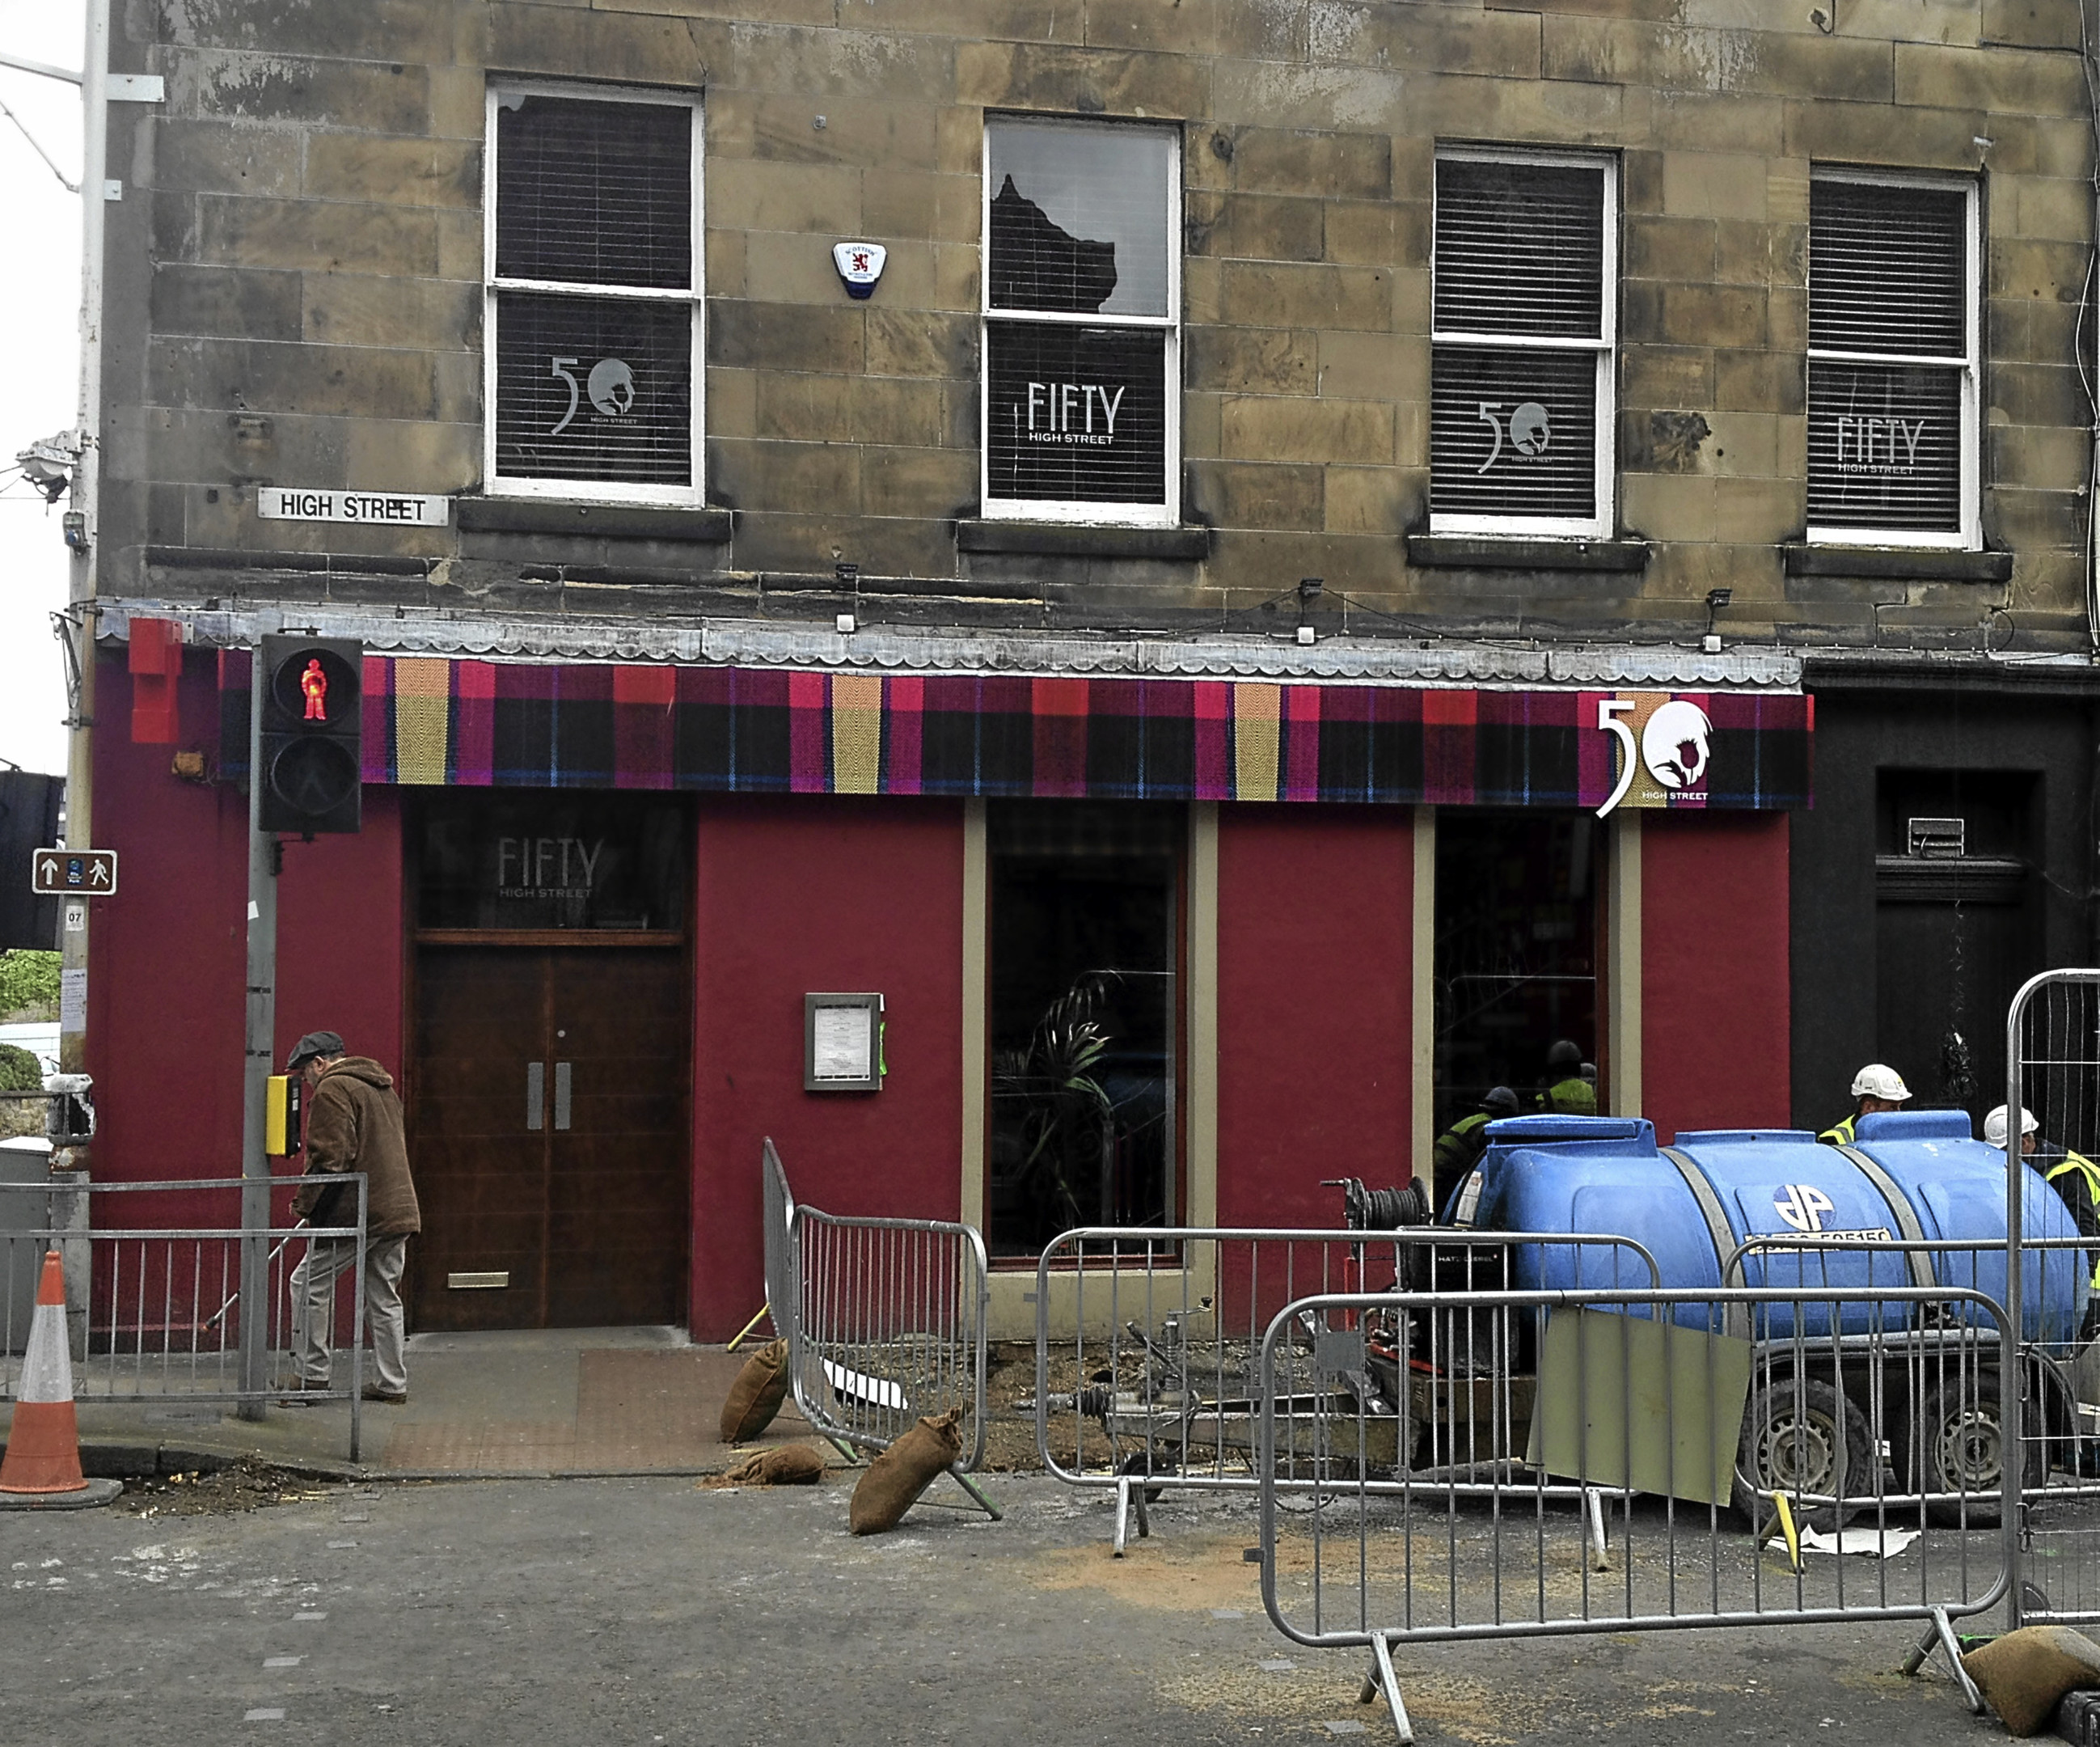 Fifty High Street in Kirkcaldy is closing down.